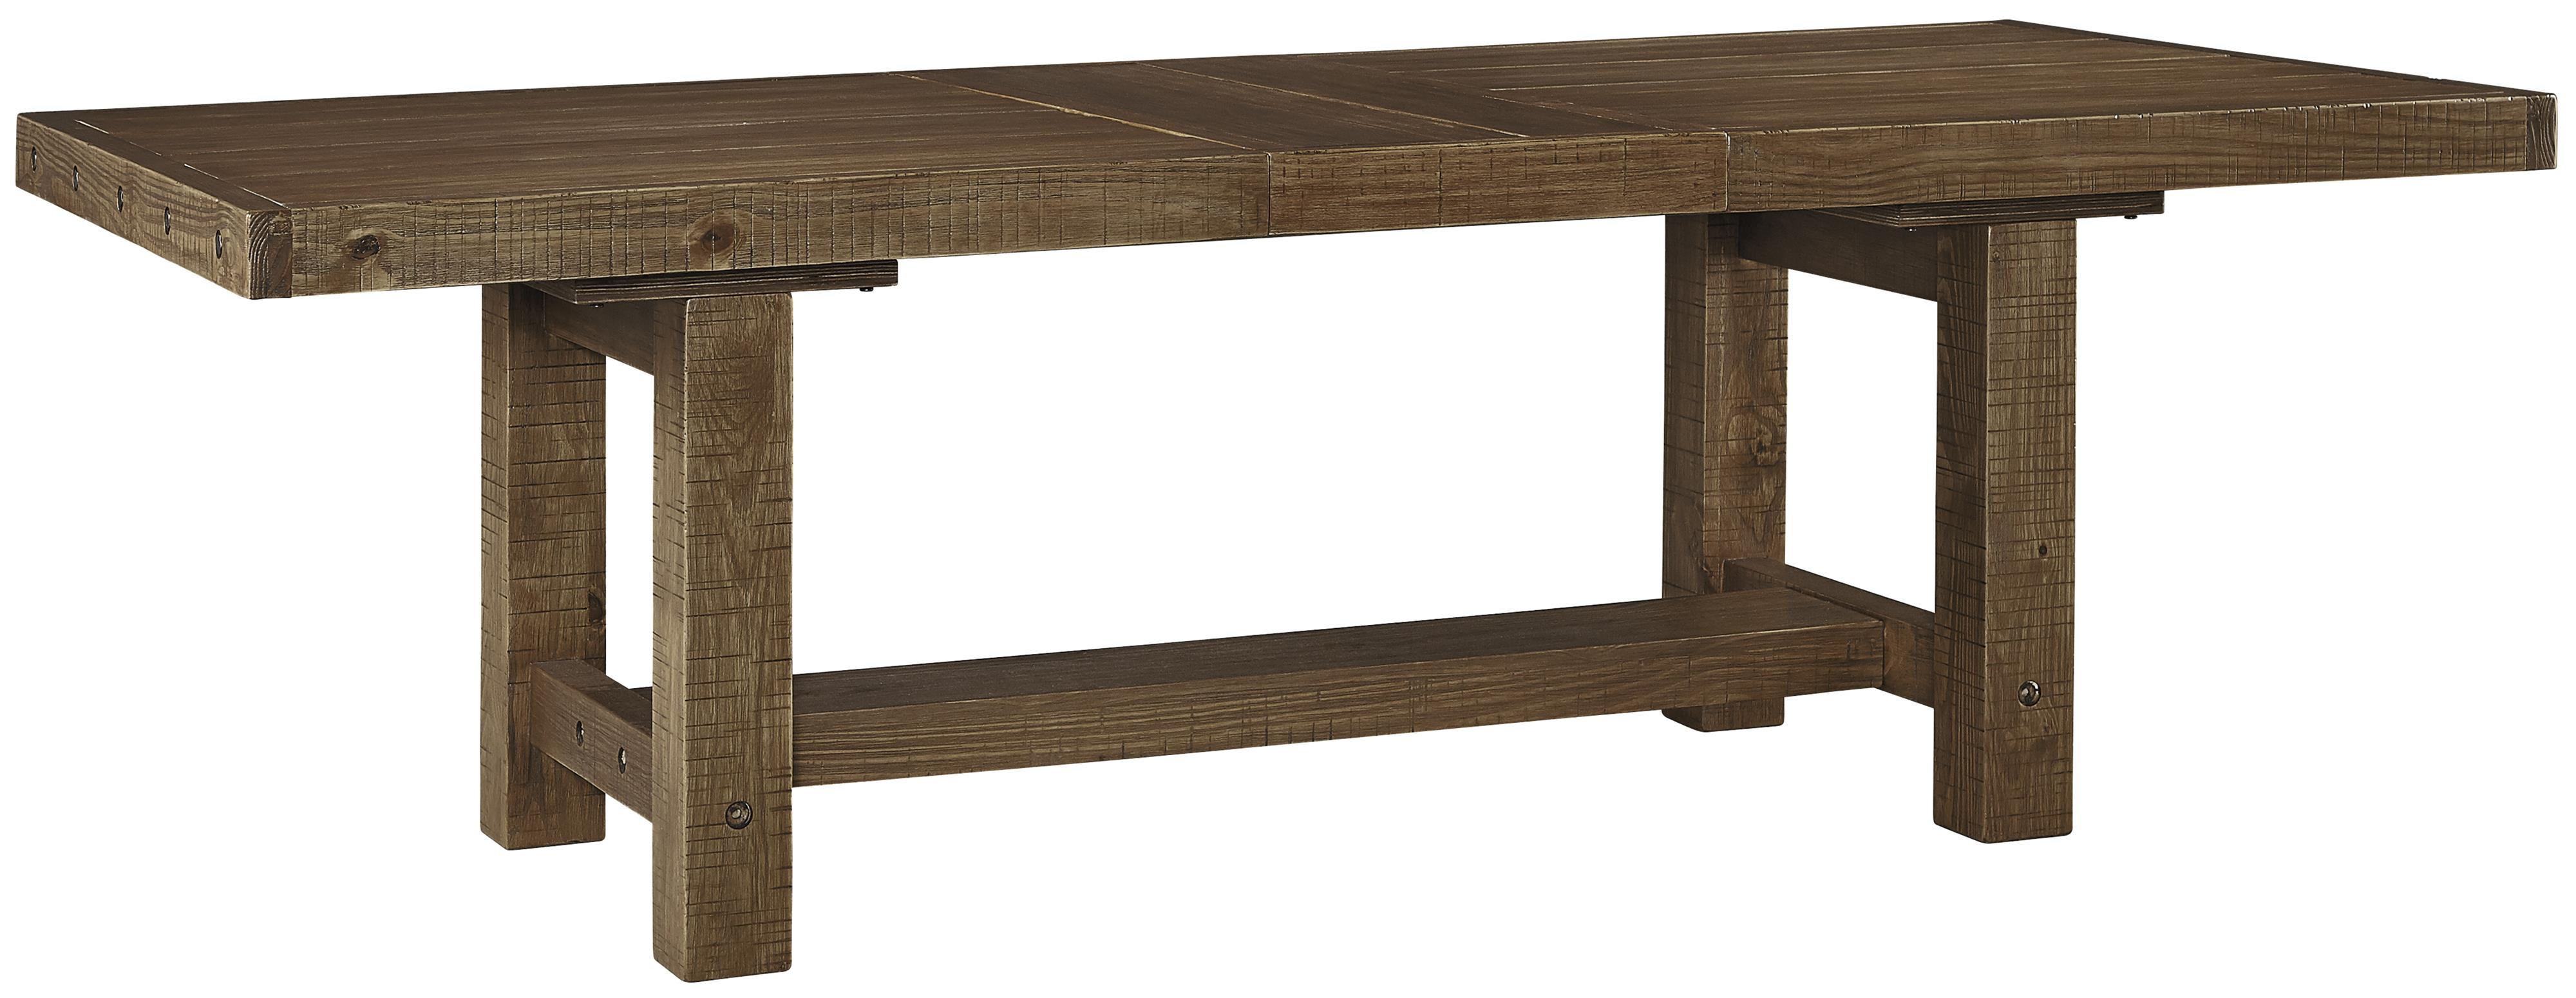 Signature design by ashley tamilo rectangle dining room for Rectangular dining room tables with leaves